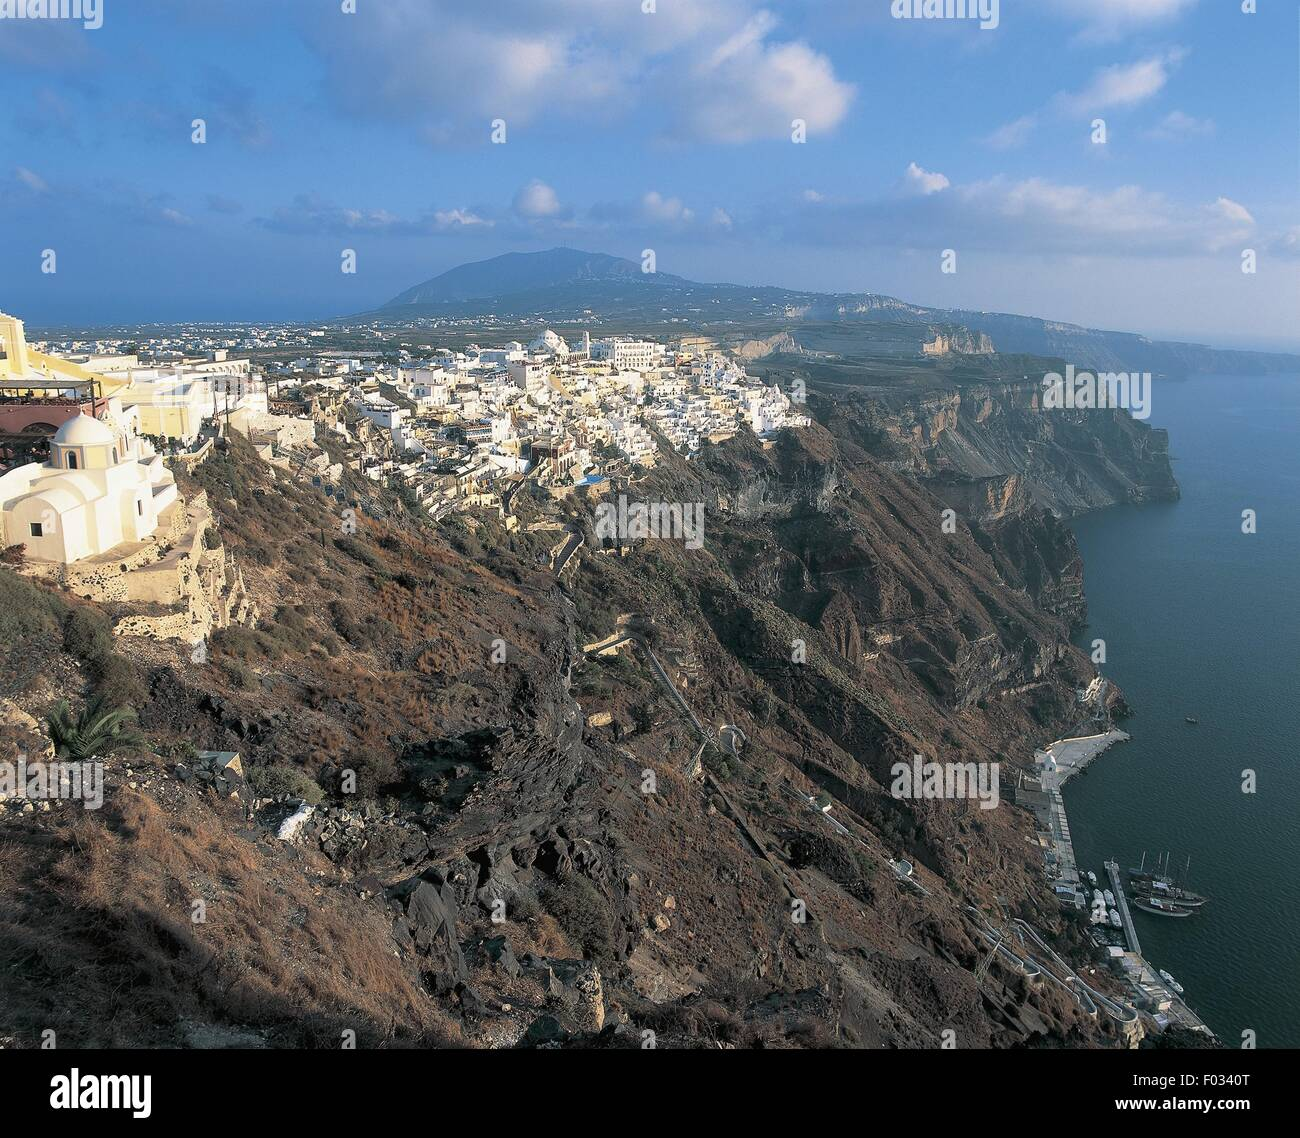 Greece - Southern Aegean - Cyclades Islands - Santorini. Fira. - Stock Image